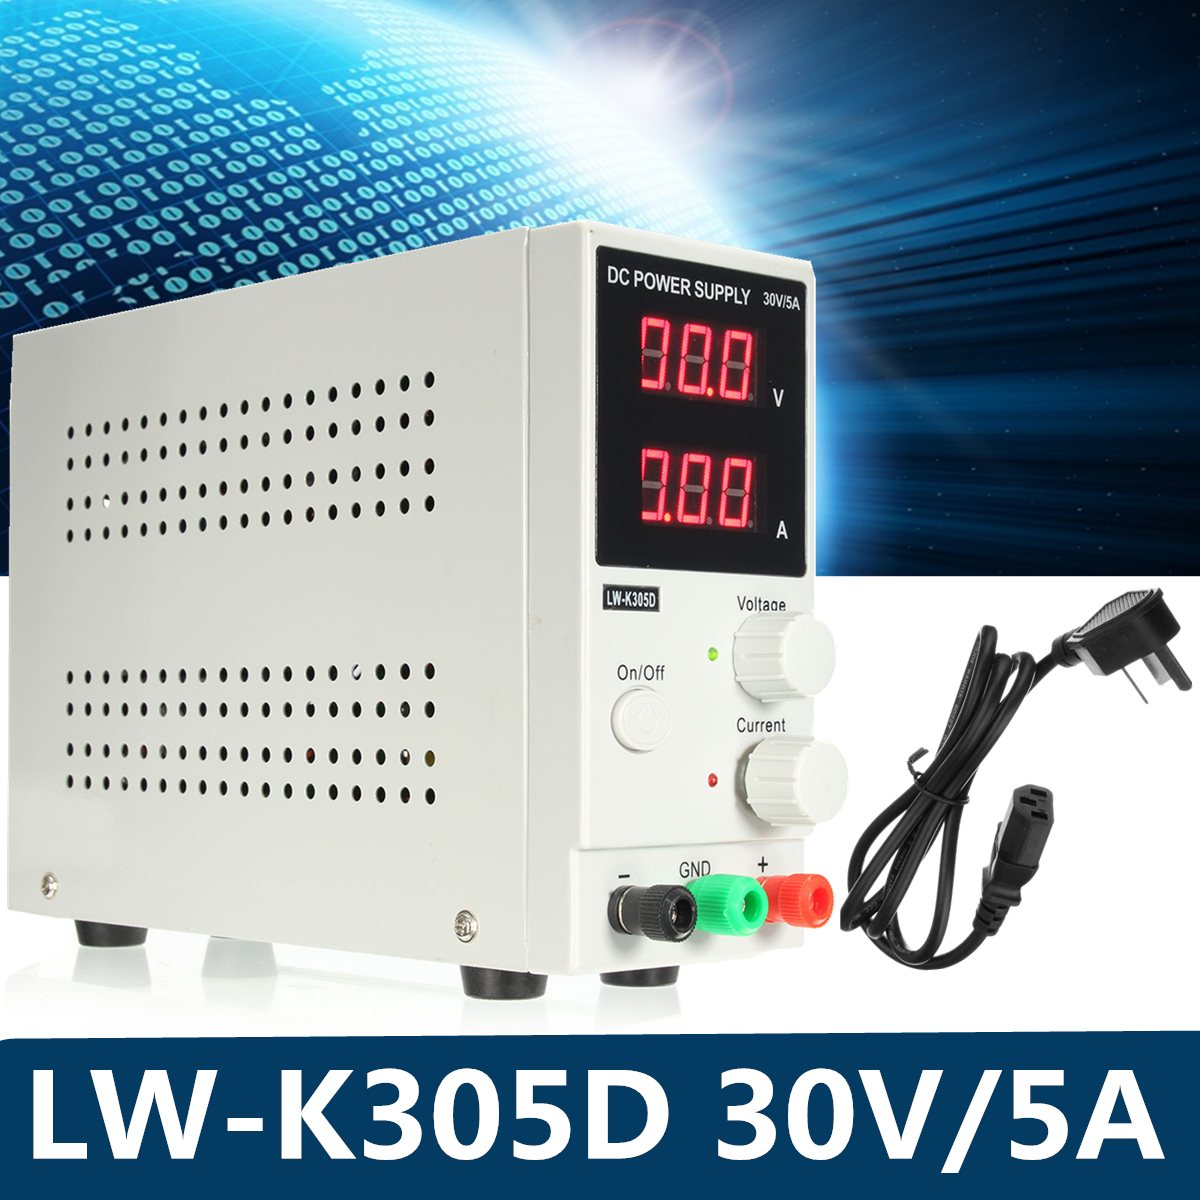 Switching DC Power Supply Adjustable Variable 0-30V / 0-5A Adjustable Switching Regulated Power Supply Digital kxn 3020d dc power supply 30v20a adjustable power supply 30v 20a led high power switching variable dc power supply 220v